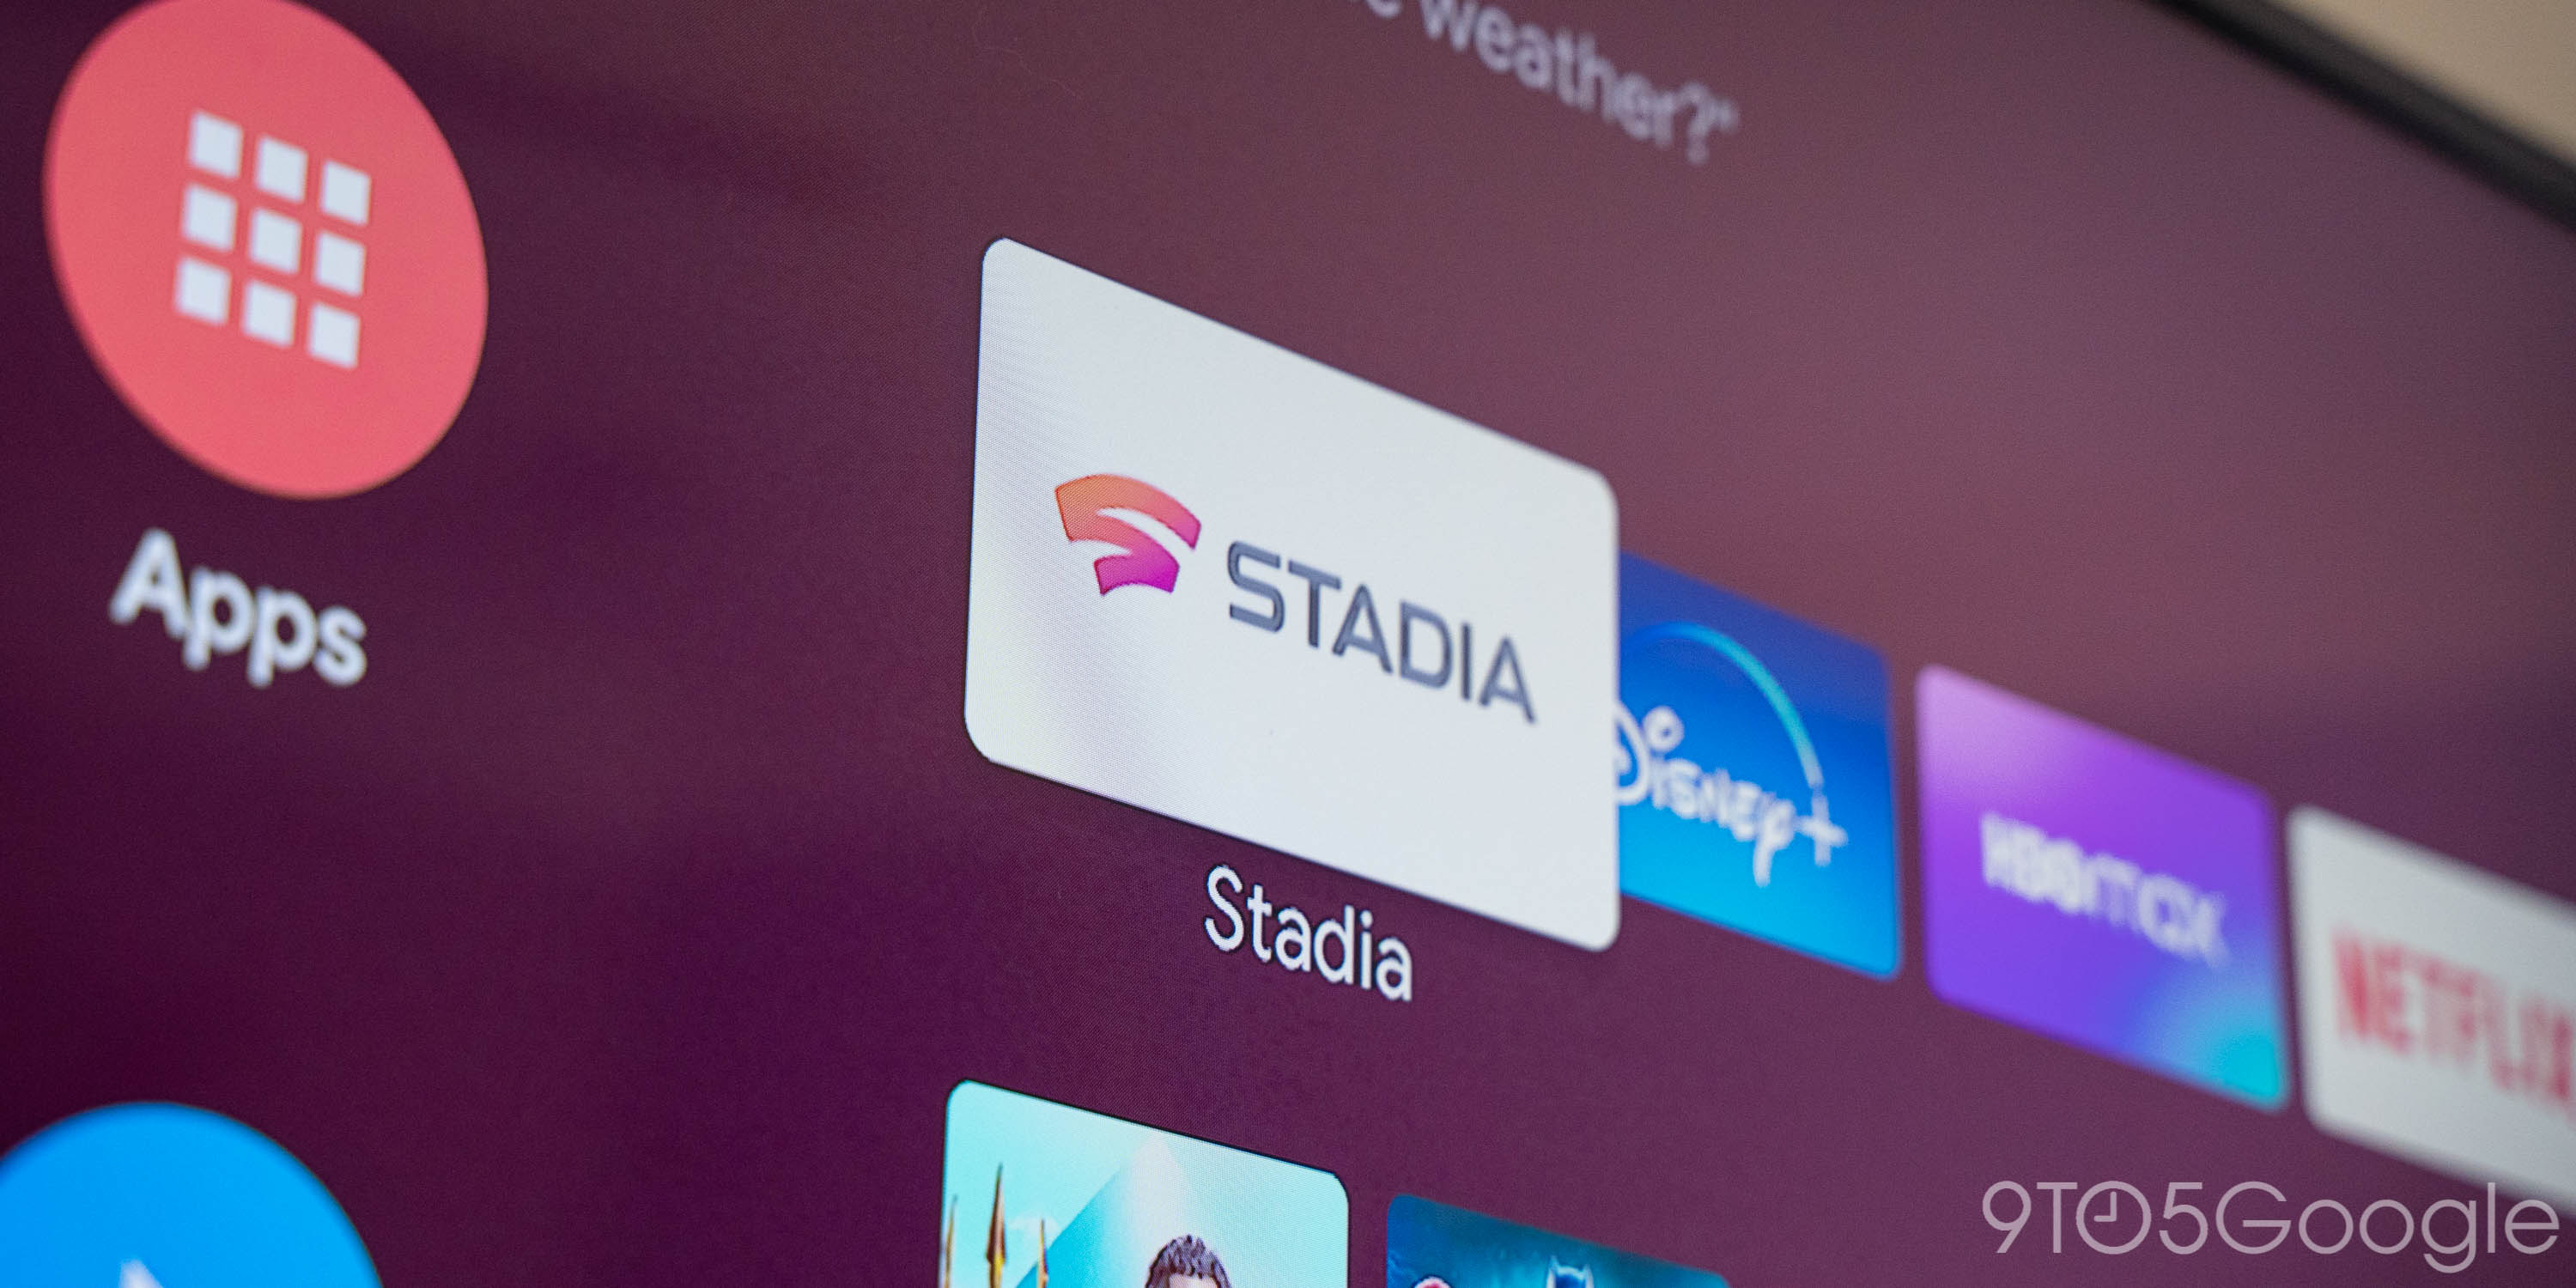 Stadia now works w/ controllers on Android TV as it inches towards official support - 9to5Google